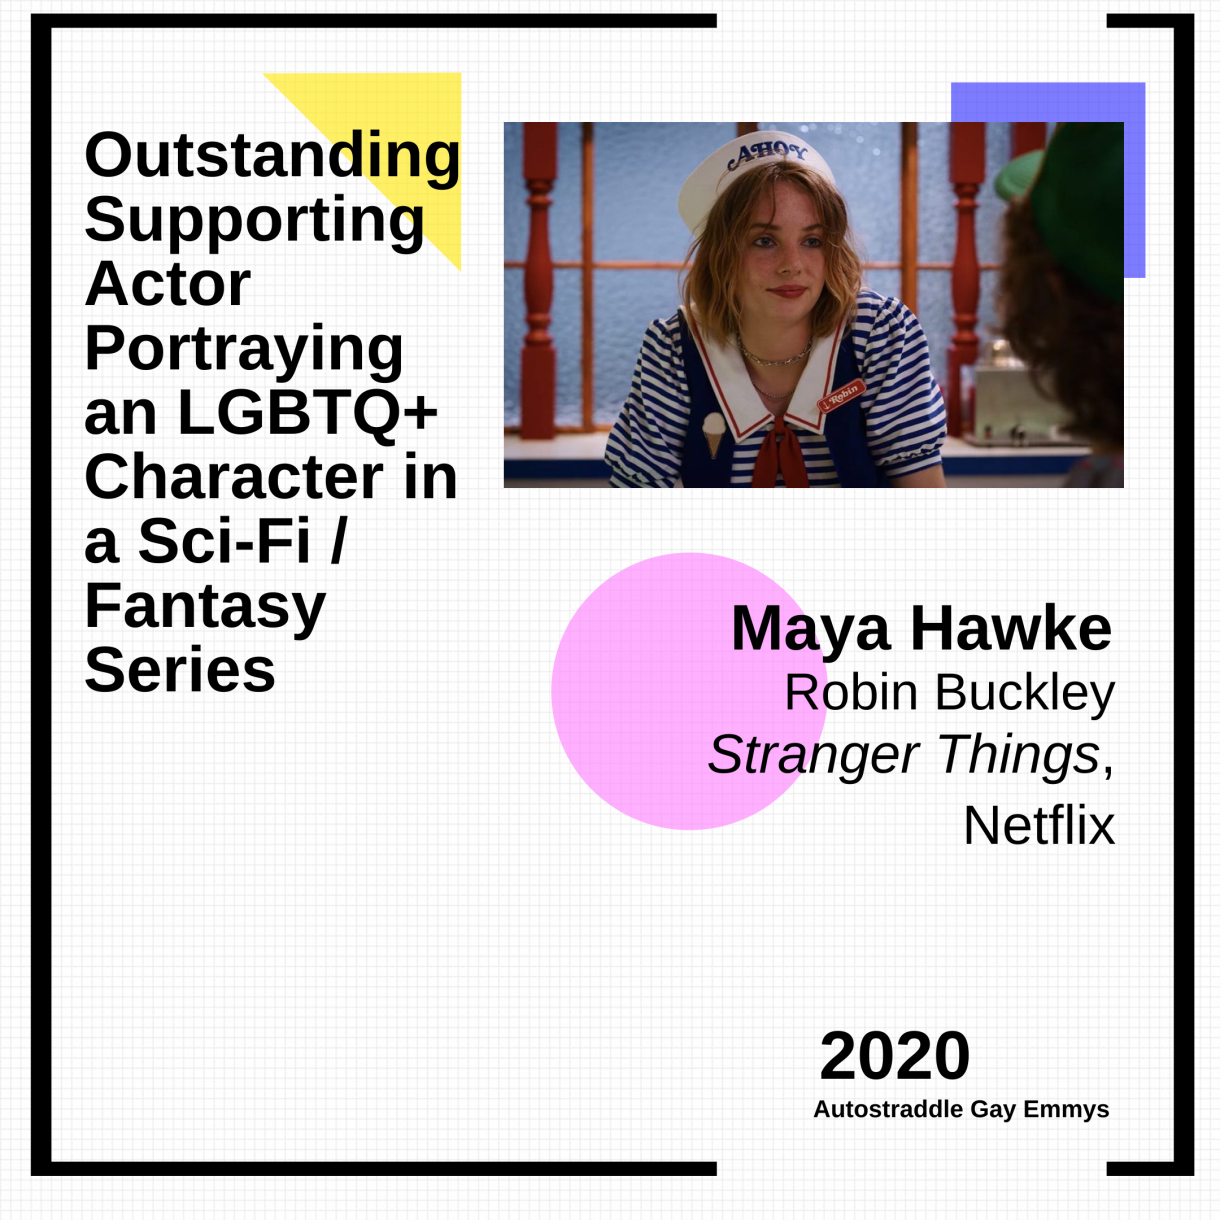 Graphic announcing Outstanding Supporting Actor Playing an LGBTQ+ Character in a Sci-Fi/Fantasy Series: Maya Hawke as Robin Buckley, Stranger Things. Pic of Robin in a striped t-shirt and sailor hat.